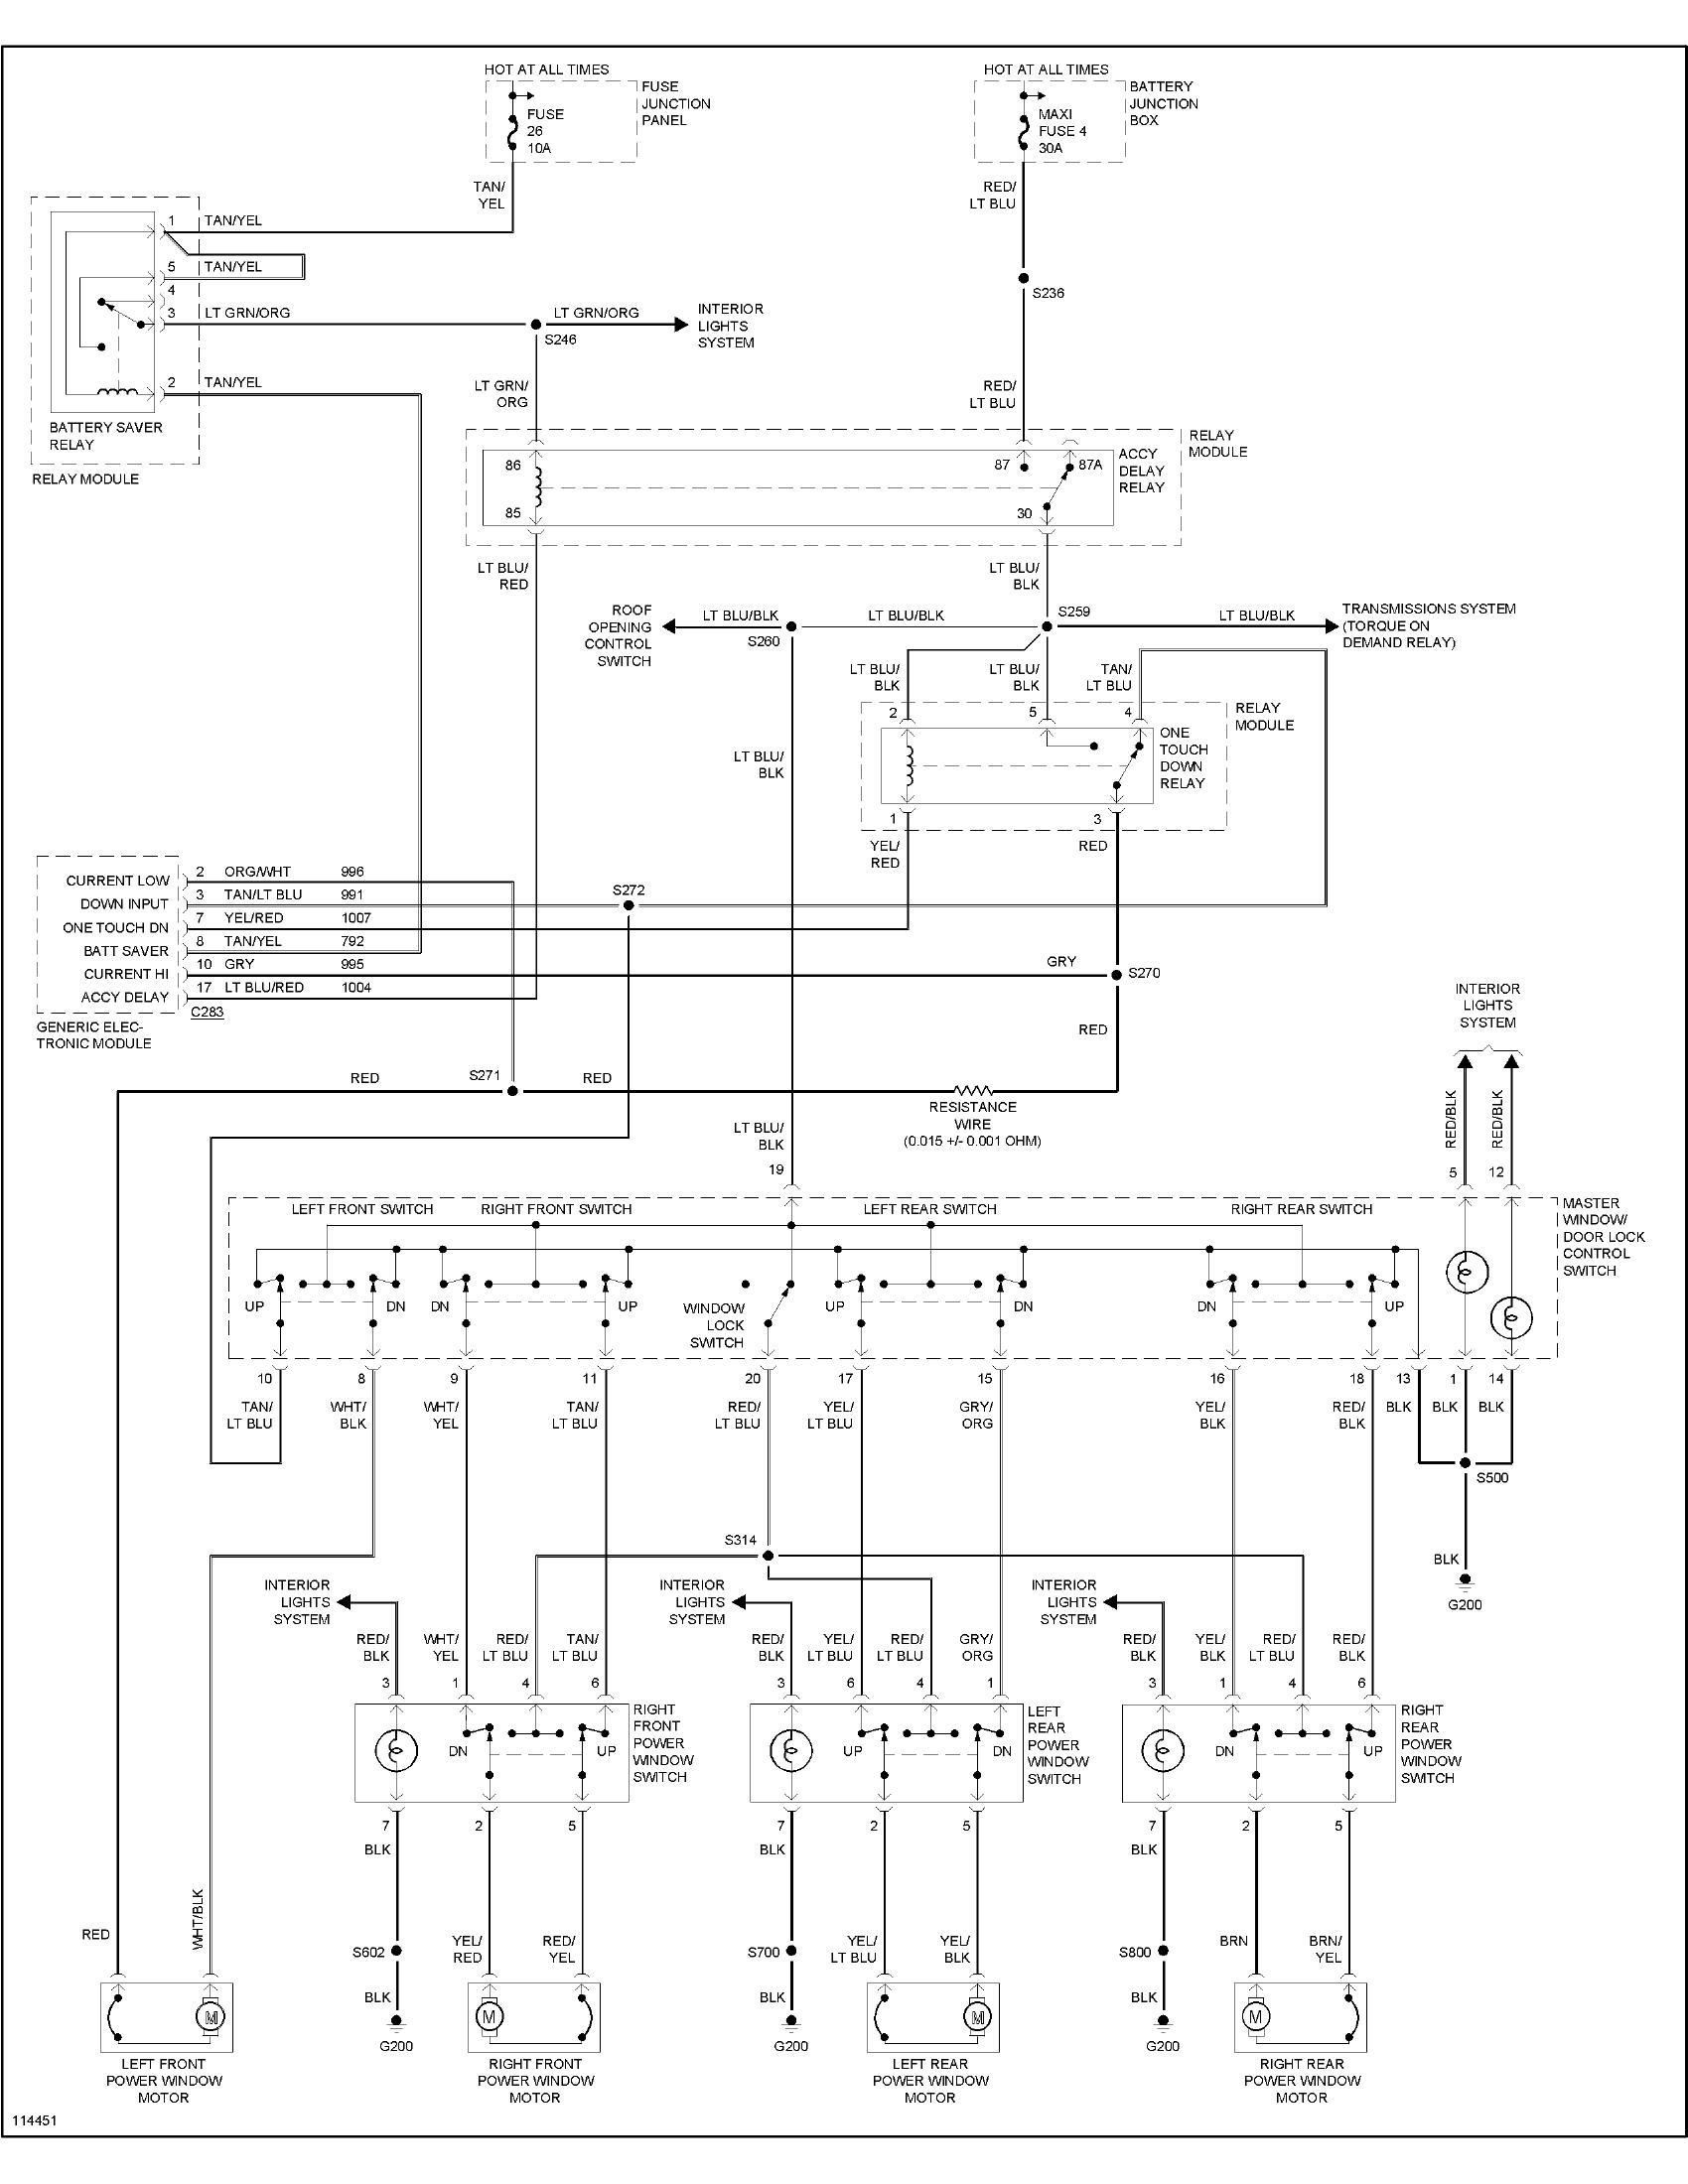 ... Diagram Of Smart Car Fuse Box. Related Post